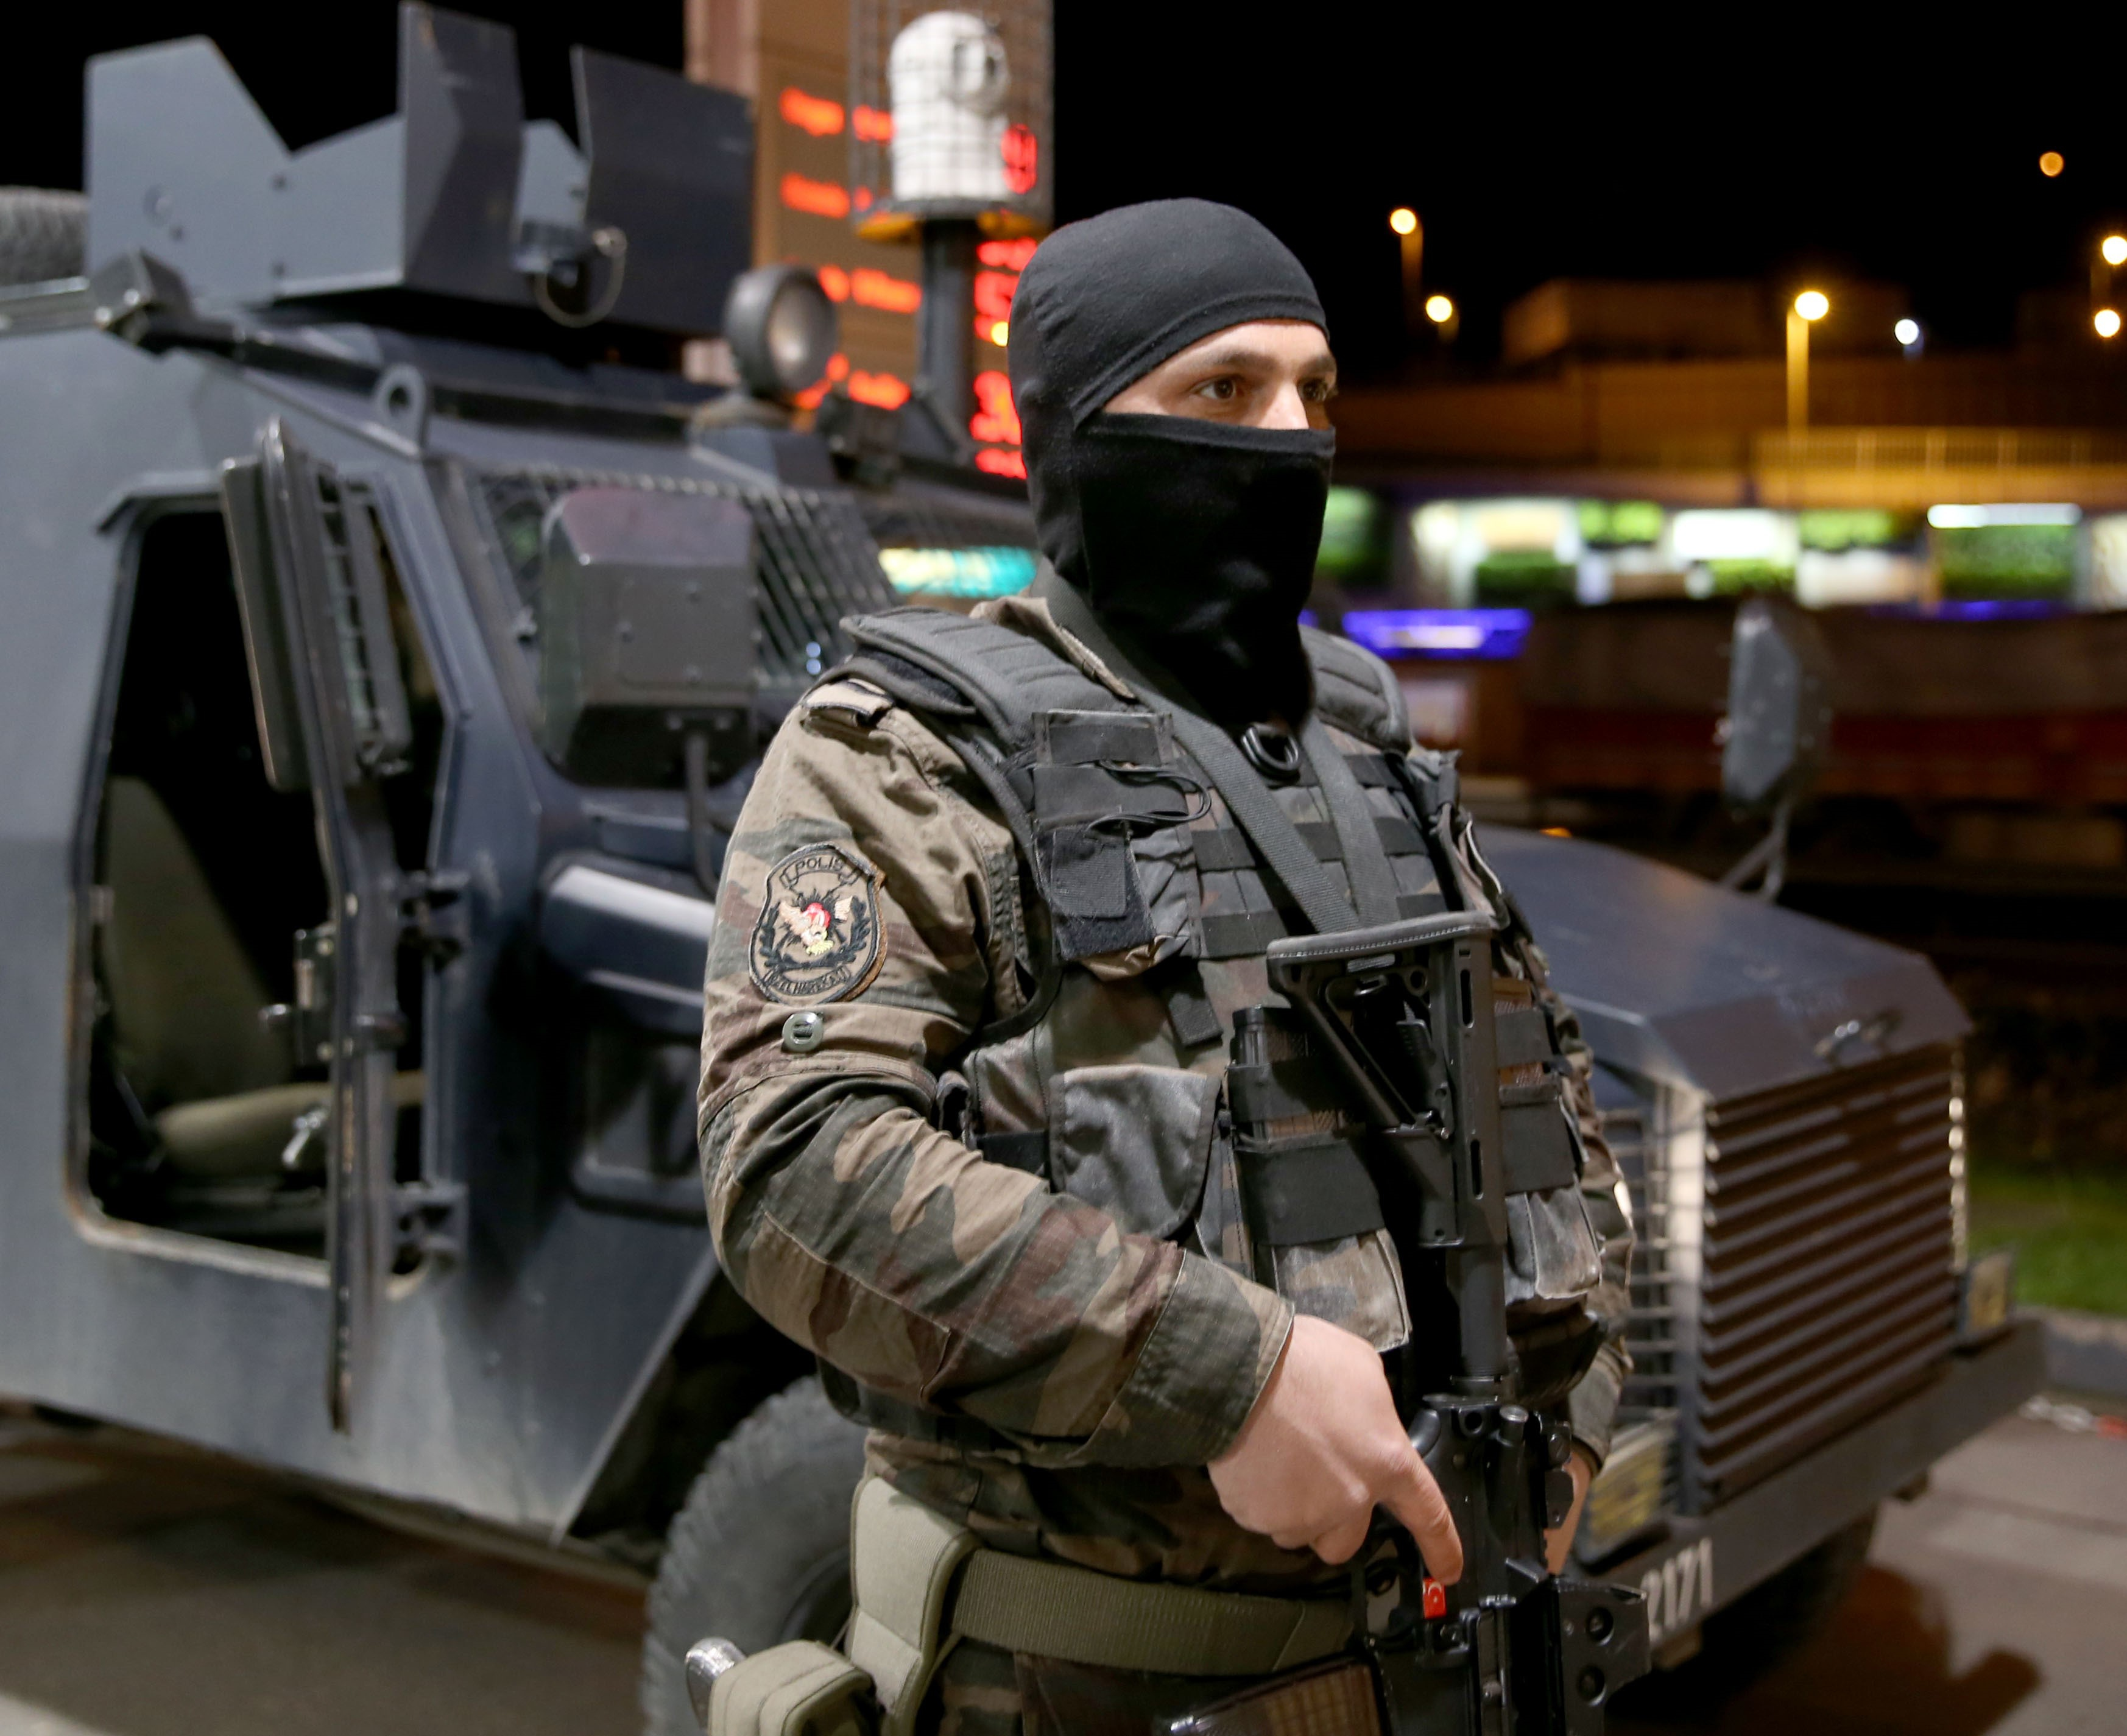 Istanbul Police Department's Anti-Terrorism Unit conduct a riot and special operation supported anti-terror operation in 16 districts in Istanbul, Turkey, March 16, 2016